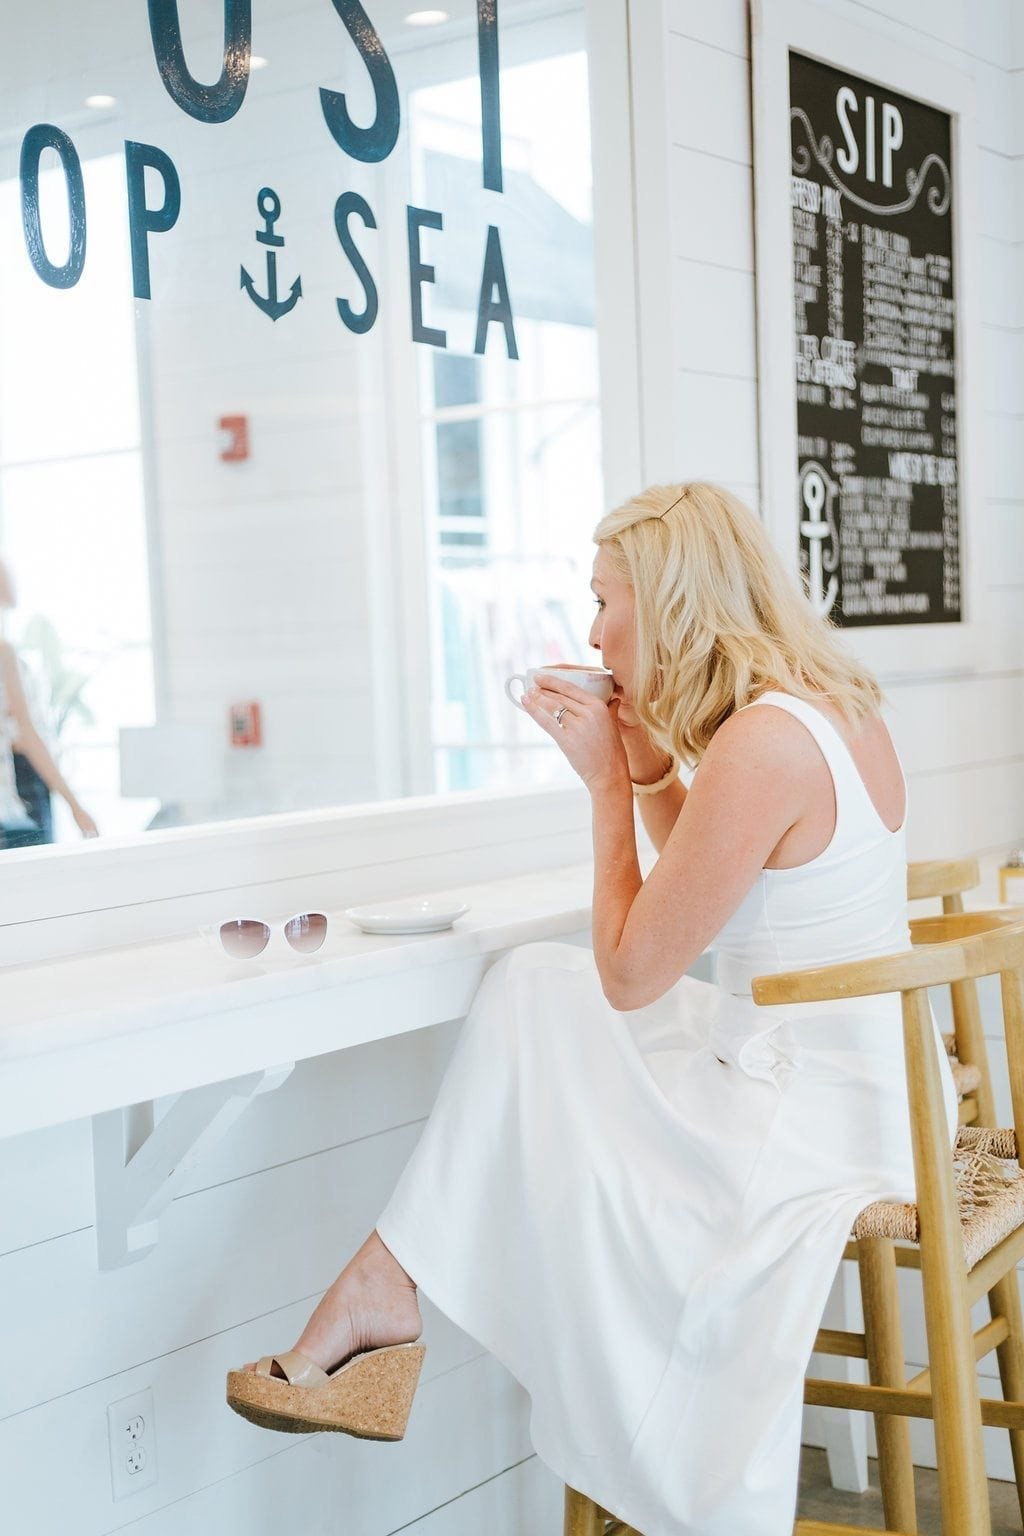 Rosemary Beach vacations. White dress in coffee shop. The Outpost in Rosemary Beach.